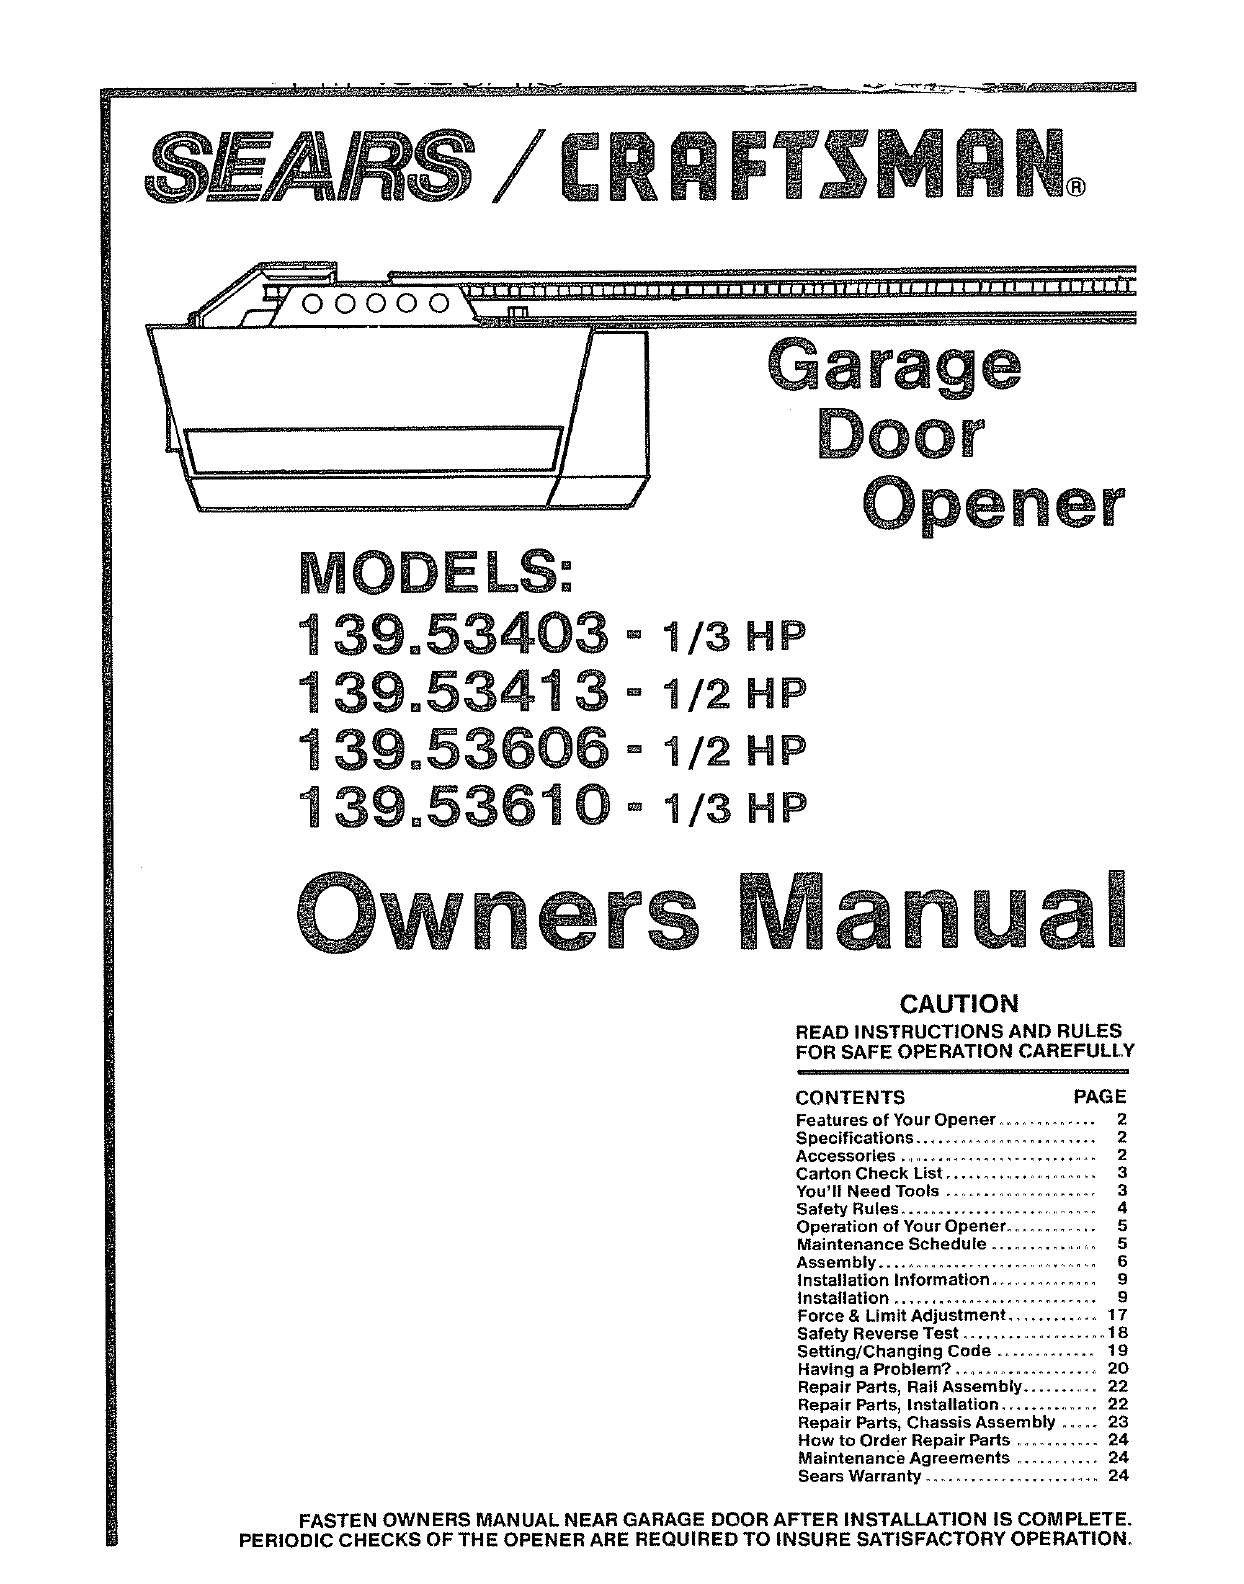 Sears Craftsman Garage Door Opener Wiring Diagram - Wiring Diagram for Stanley Garage Door Opener Best Garage Door Motor Parts Lovely 33 Stanley Garage 15g